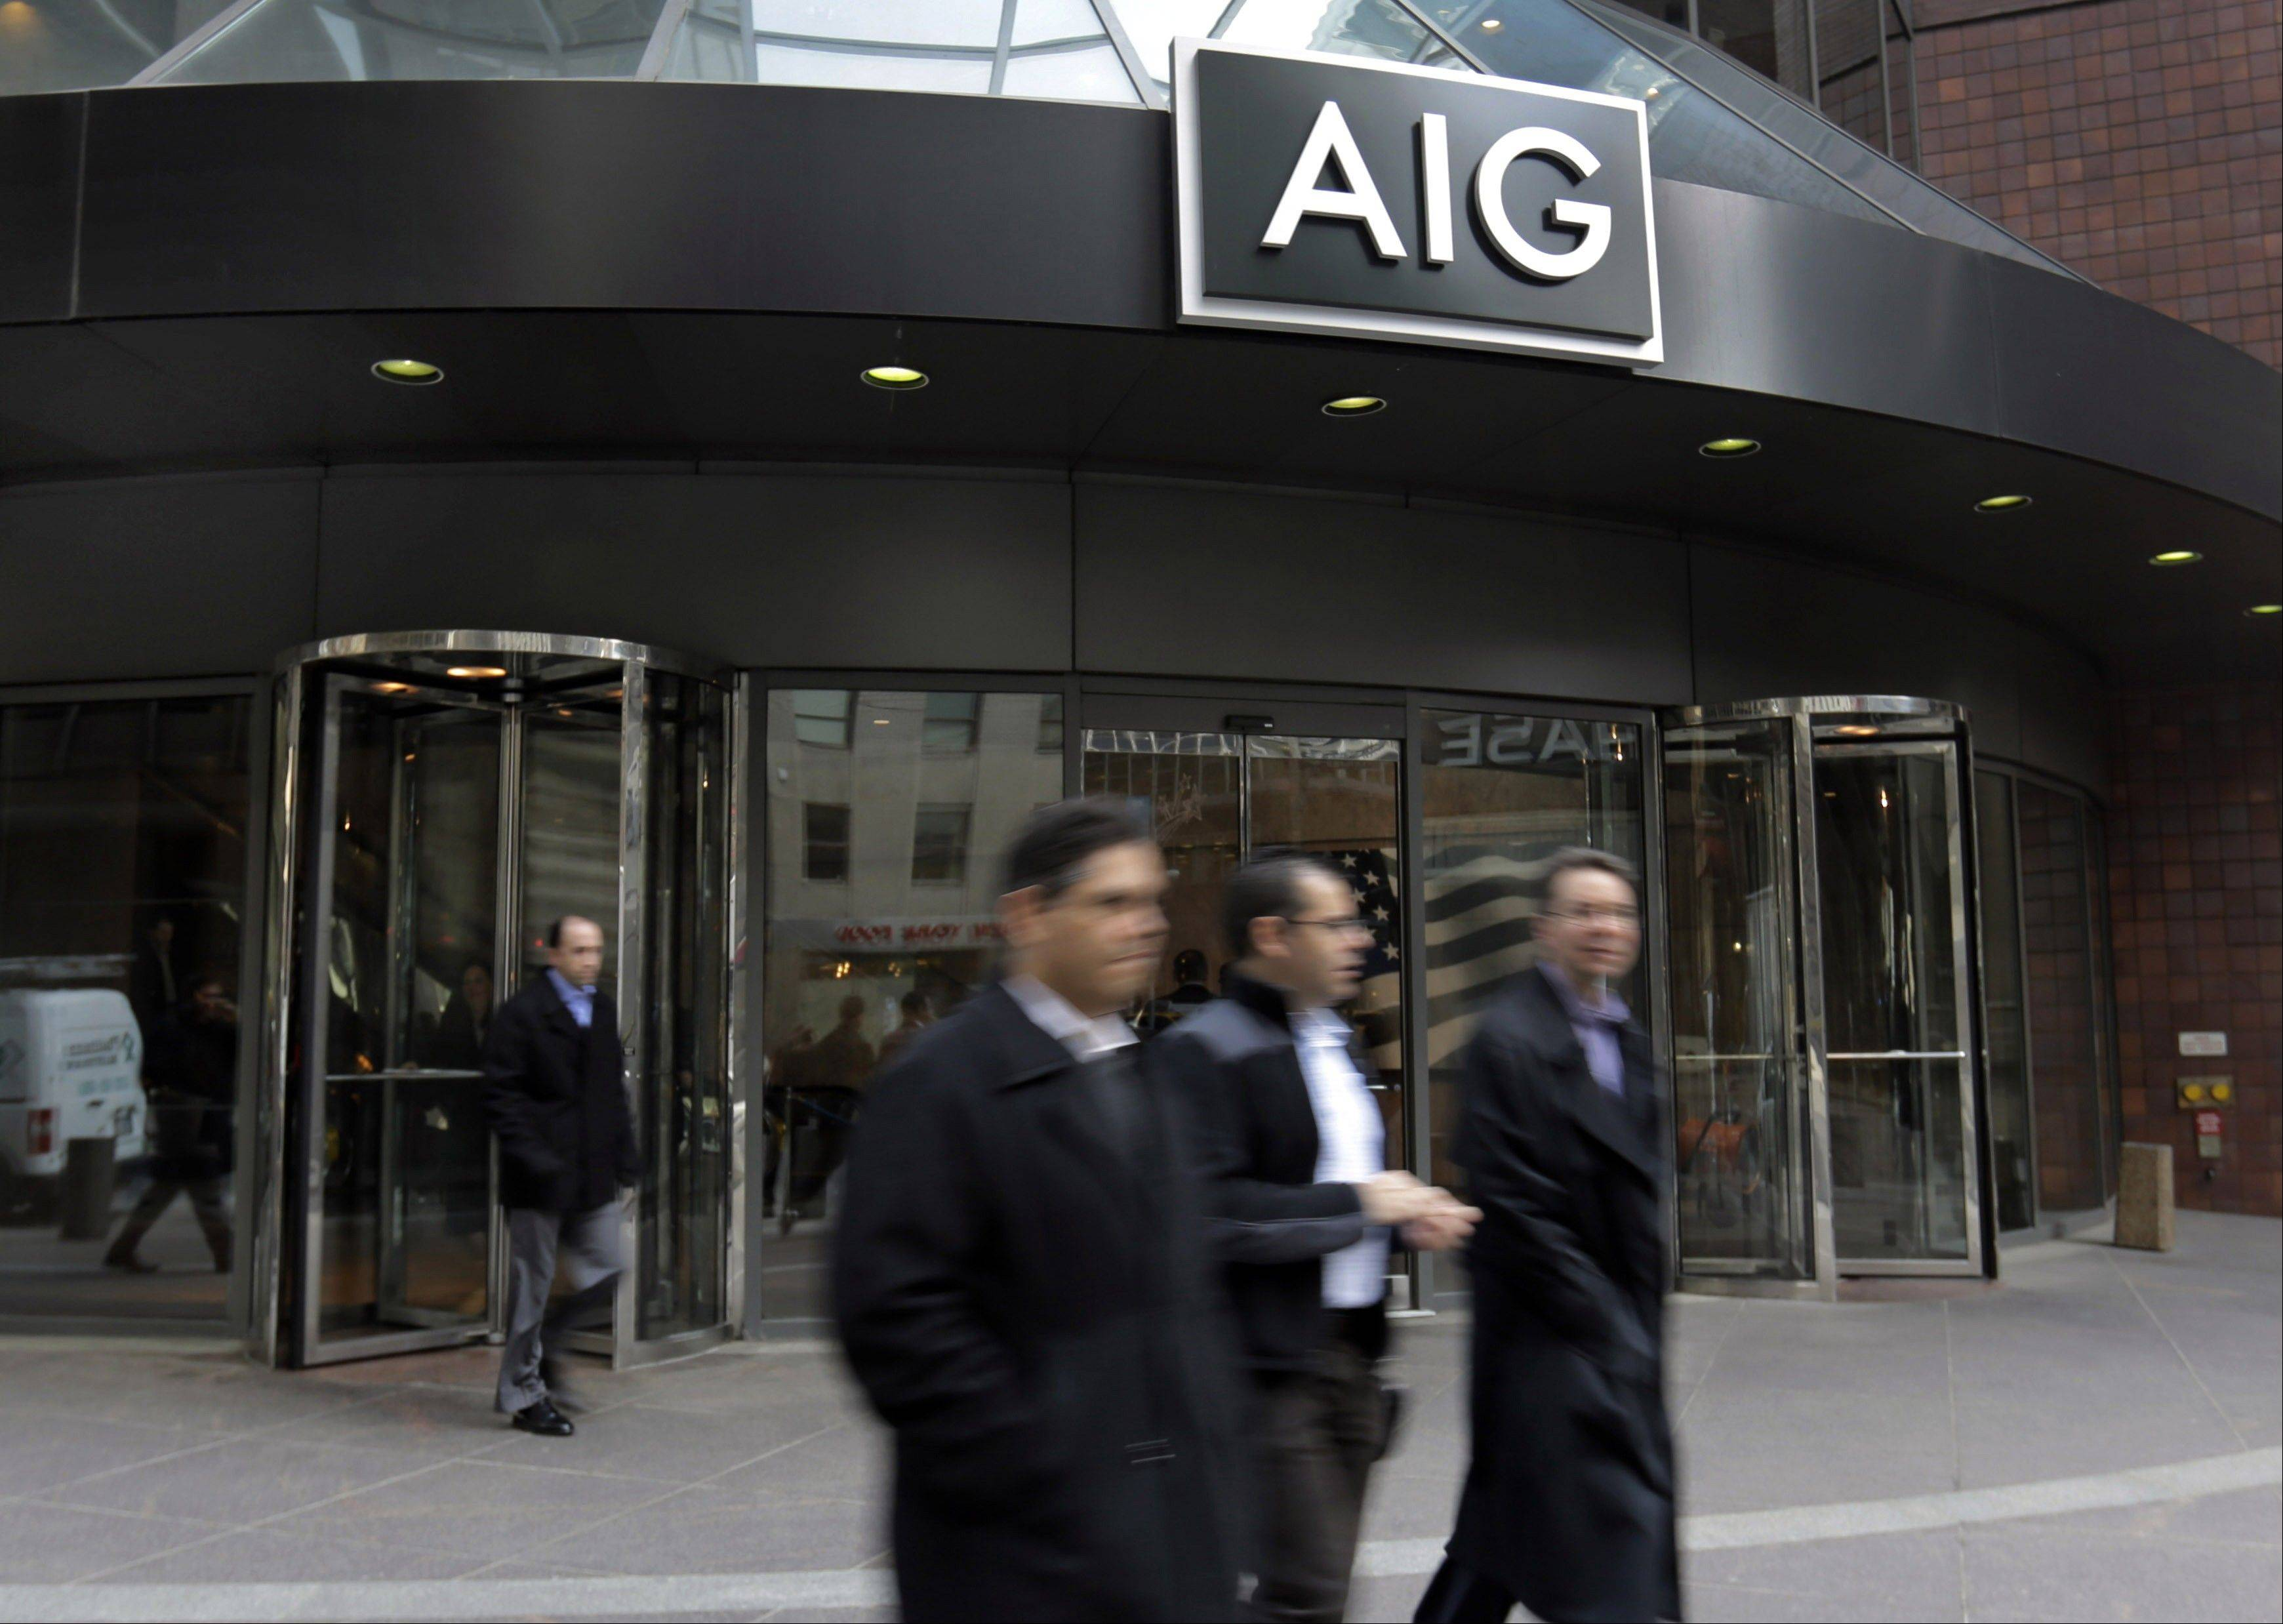 American International Group Inc. said Tuesday its board of directors will weigh whether to take part in a shareholder lawsuit against the U.S. over the government's $182 billion bailout of the insurer.